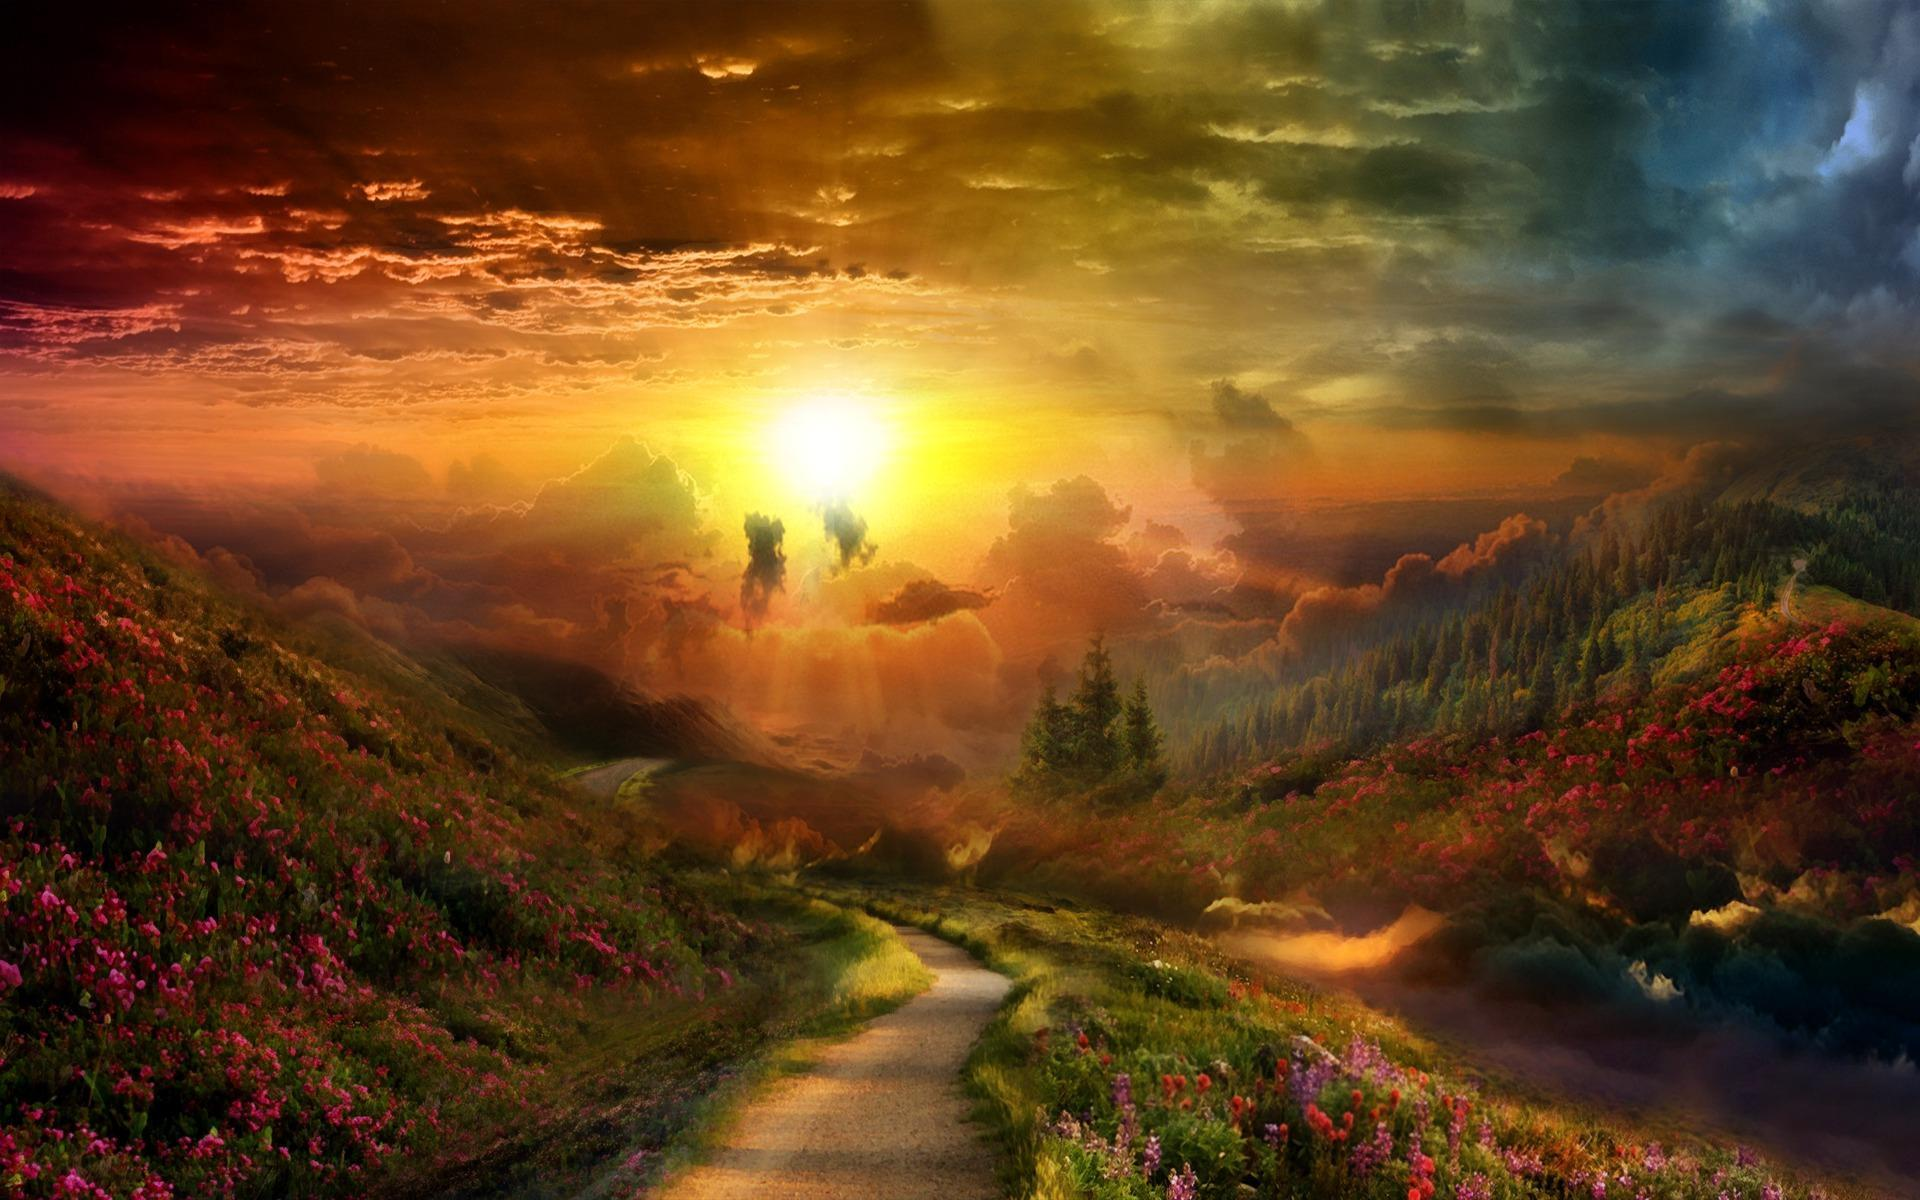 A New Beginning Hd Wallpaper Background Image 1920x1200 Id